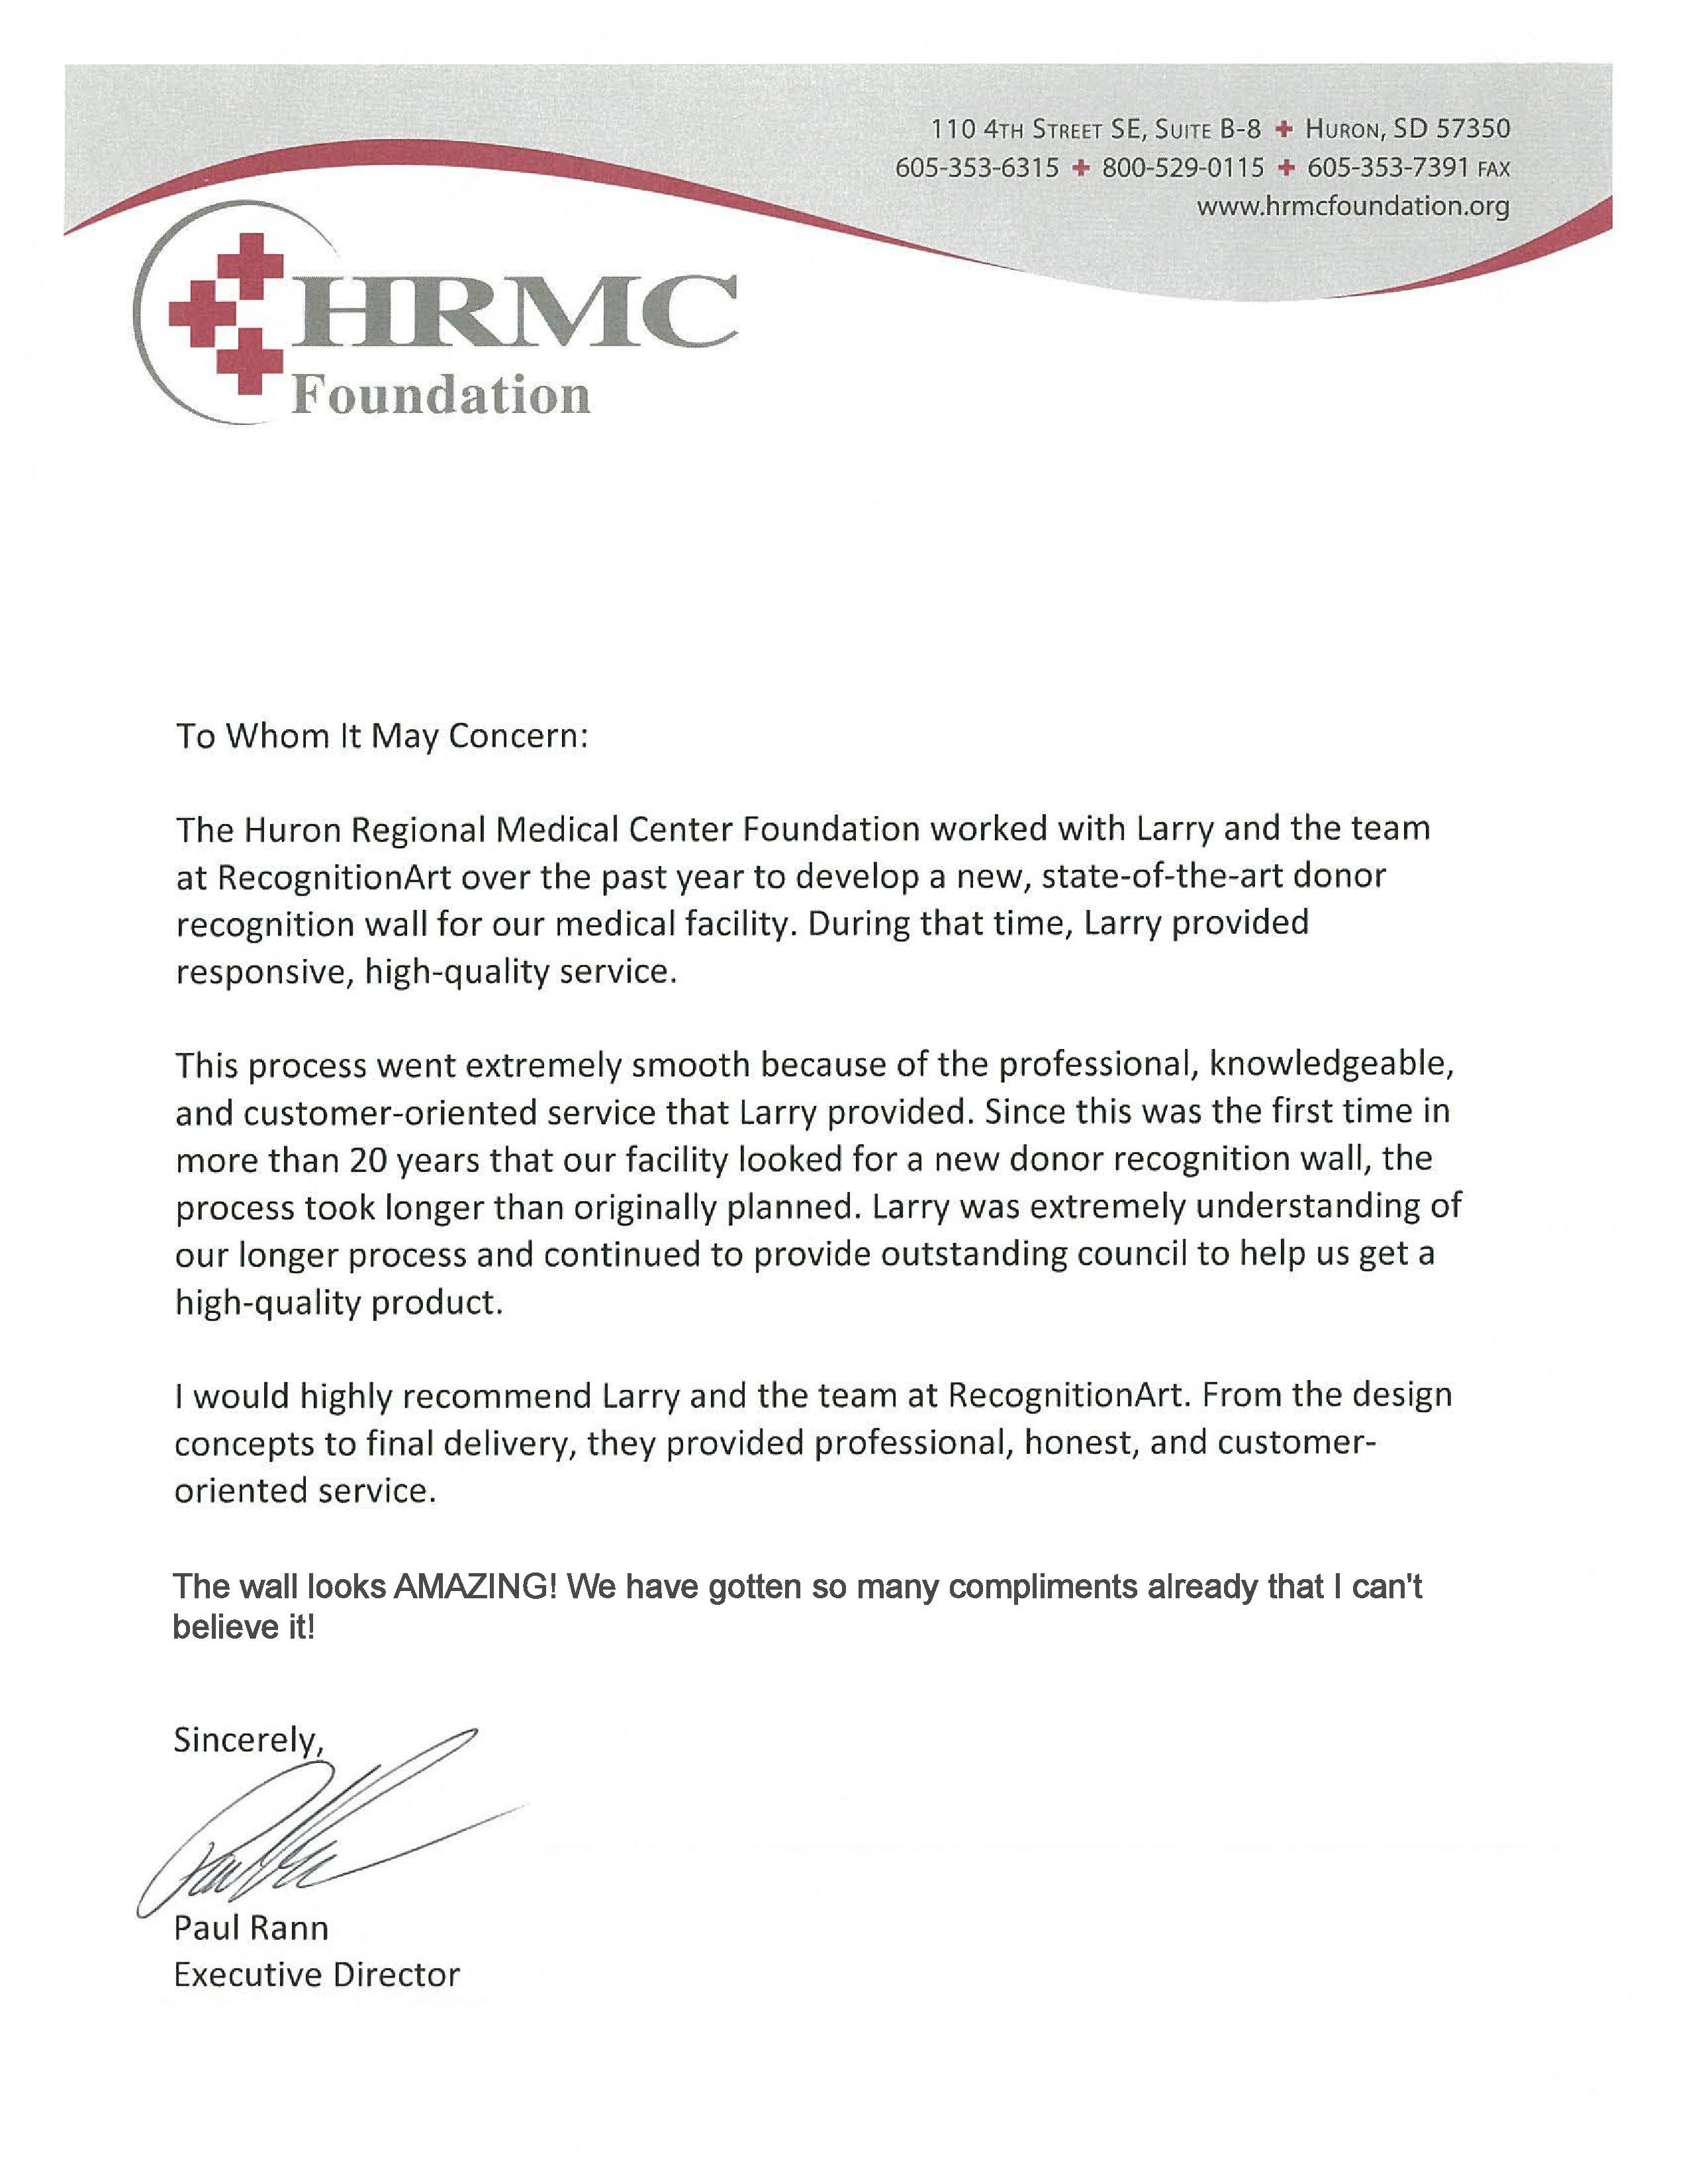 LETTER OF RECOMMENDATION - HRMC #donordisplay ...